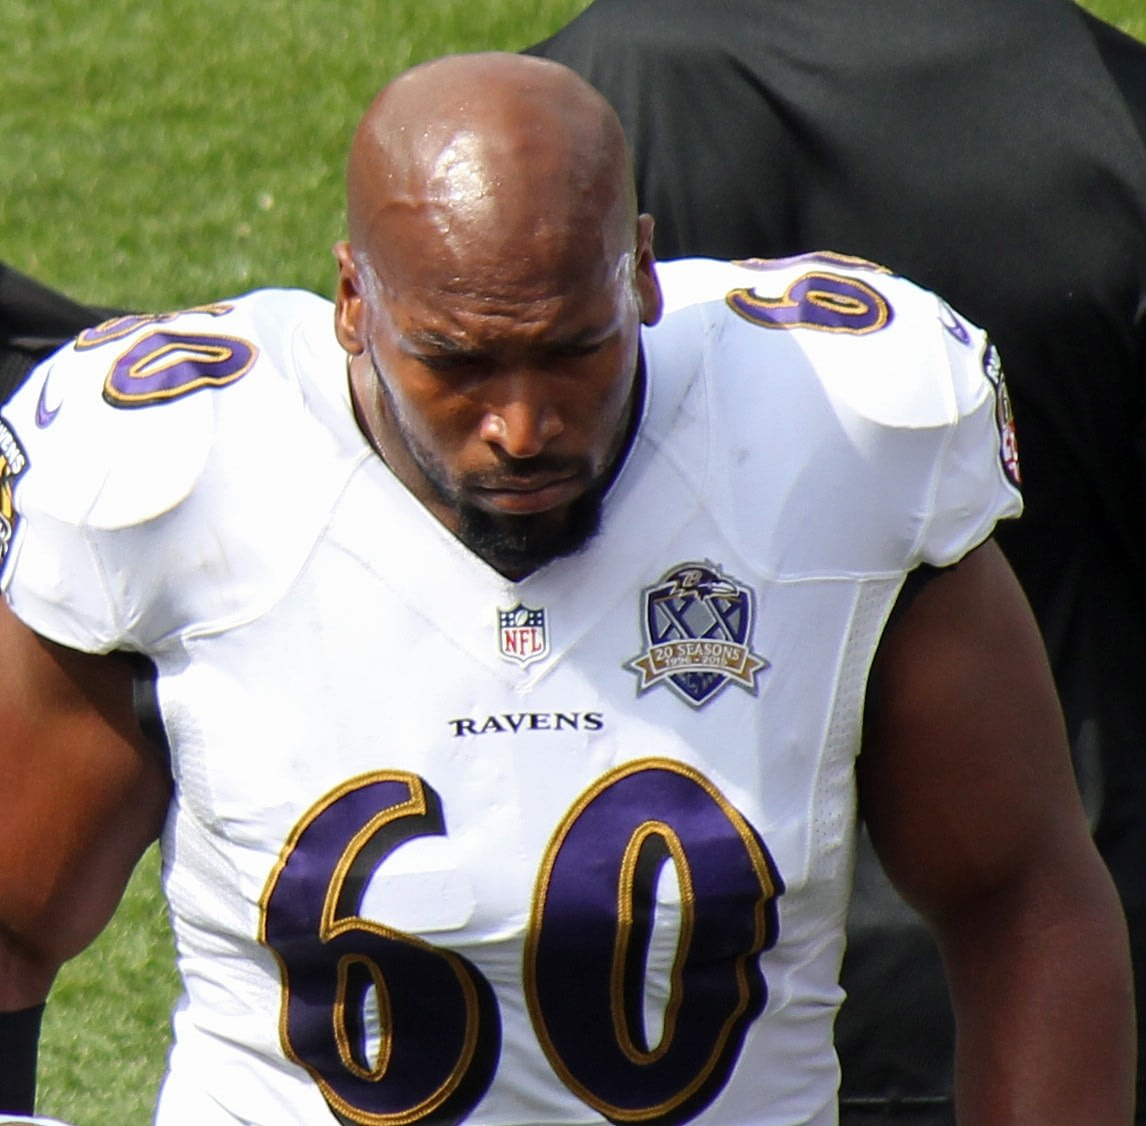 former American football offensive tackle, Eugene Monroe